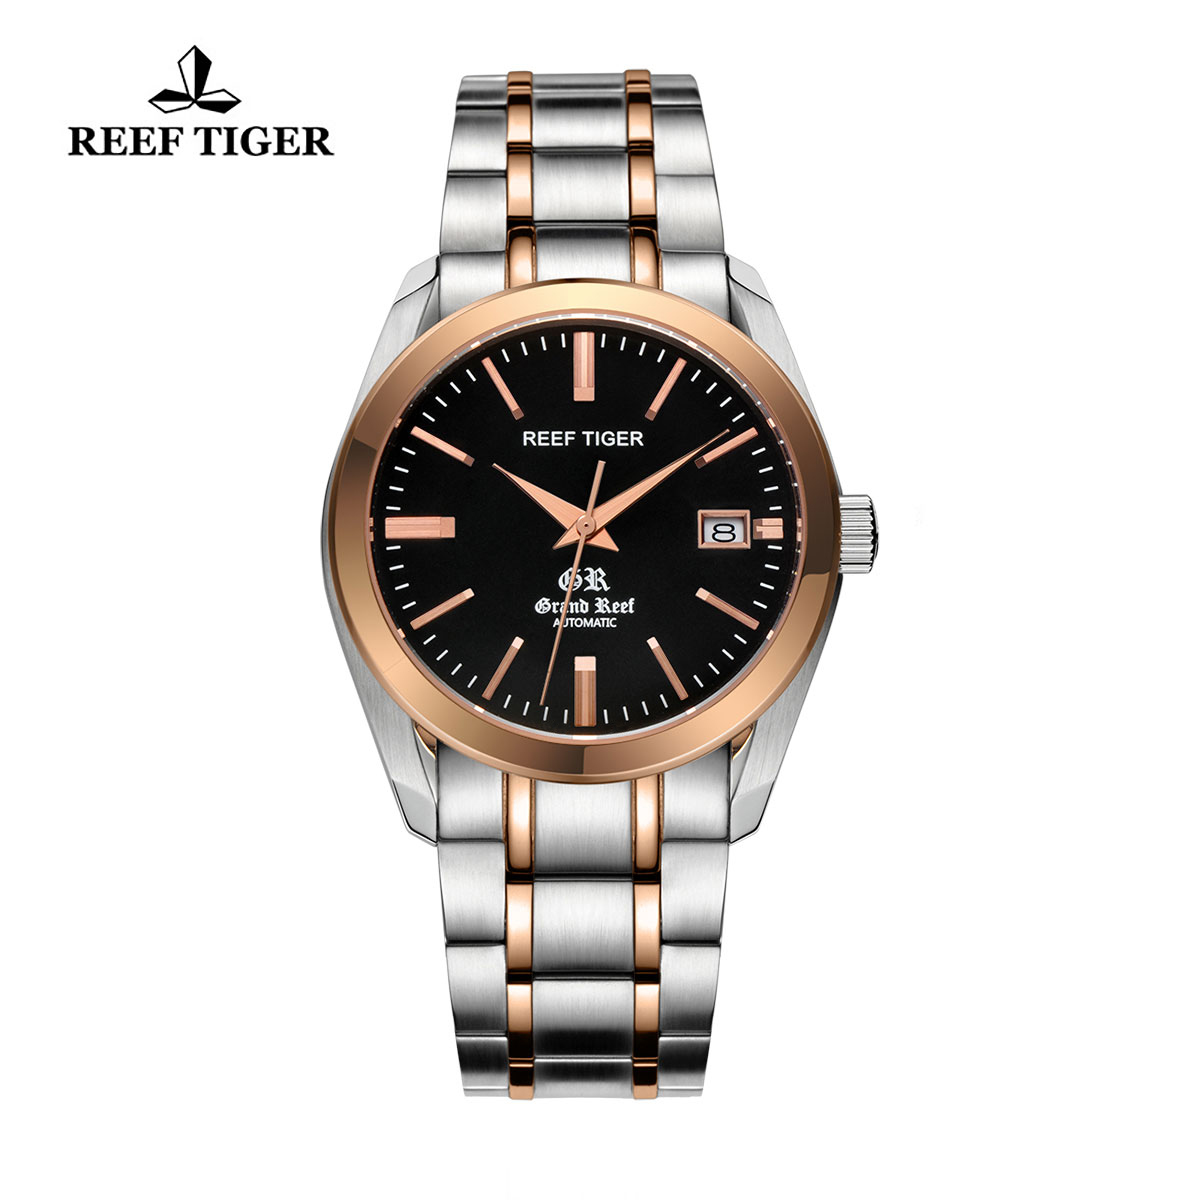 Reef Tiger Grand Reef Dress Watch with Date Black Dial Two Tone Watch RGA818-TBT